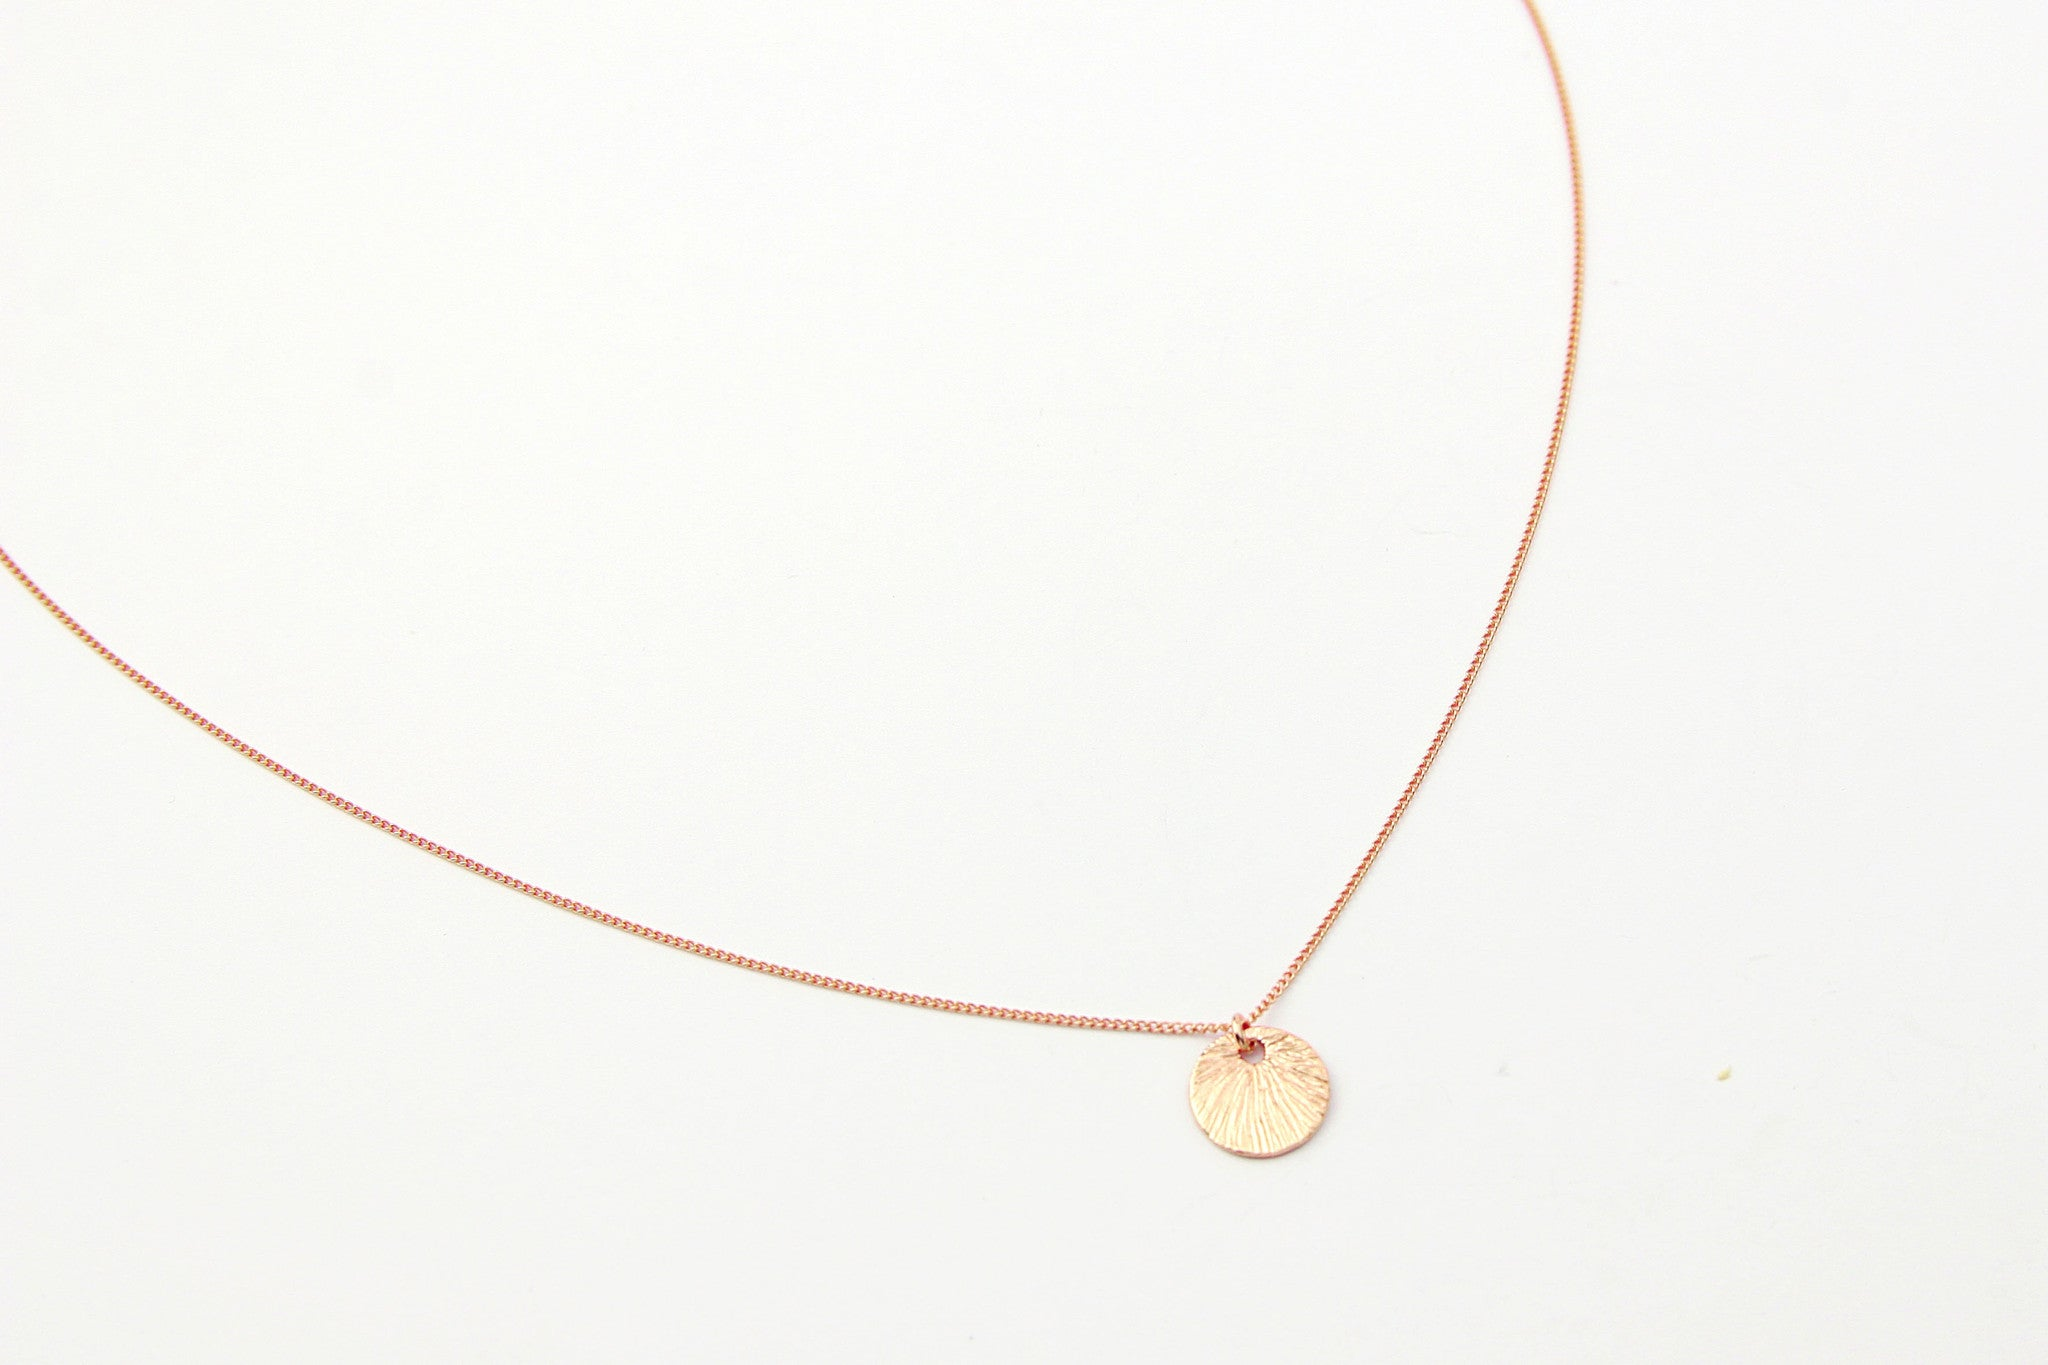 jewelberry necklace kette small shell curb chain rose gold plated sterling silver fine jewelry handmade with love fairtrade